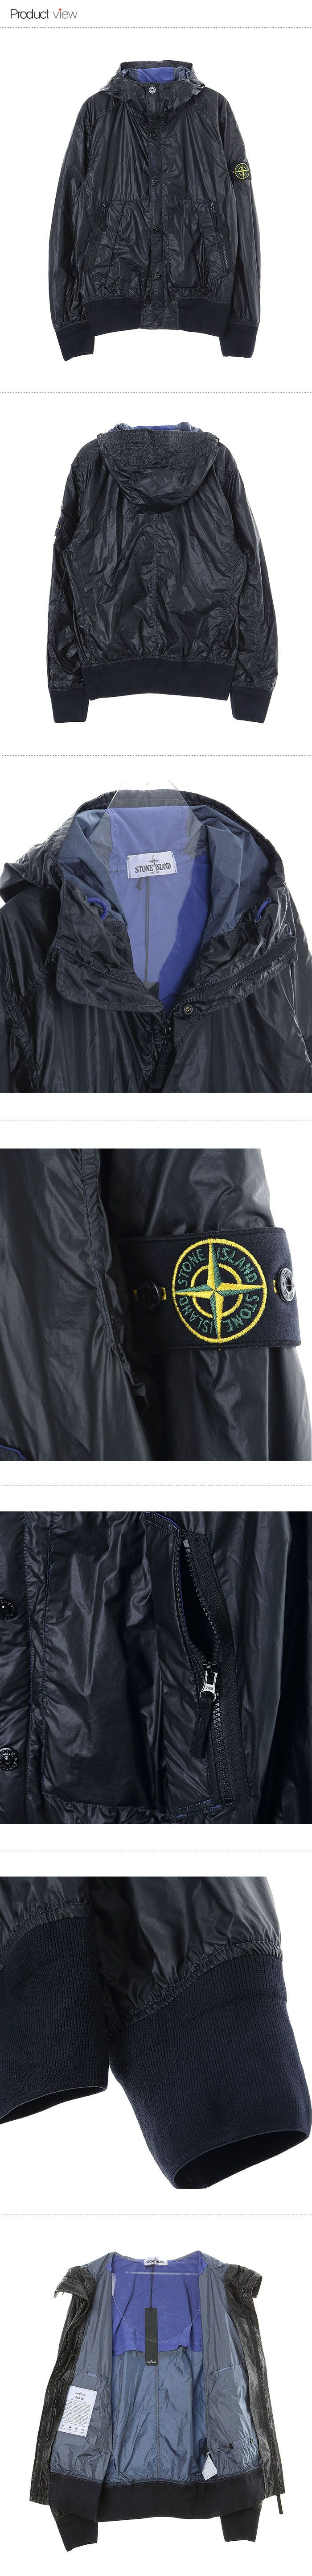 Stone Island 44b30 Garment Dyed Mussola Gommata Jacket In Black